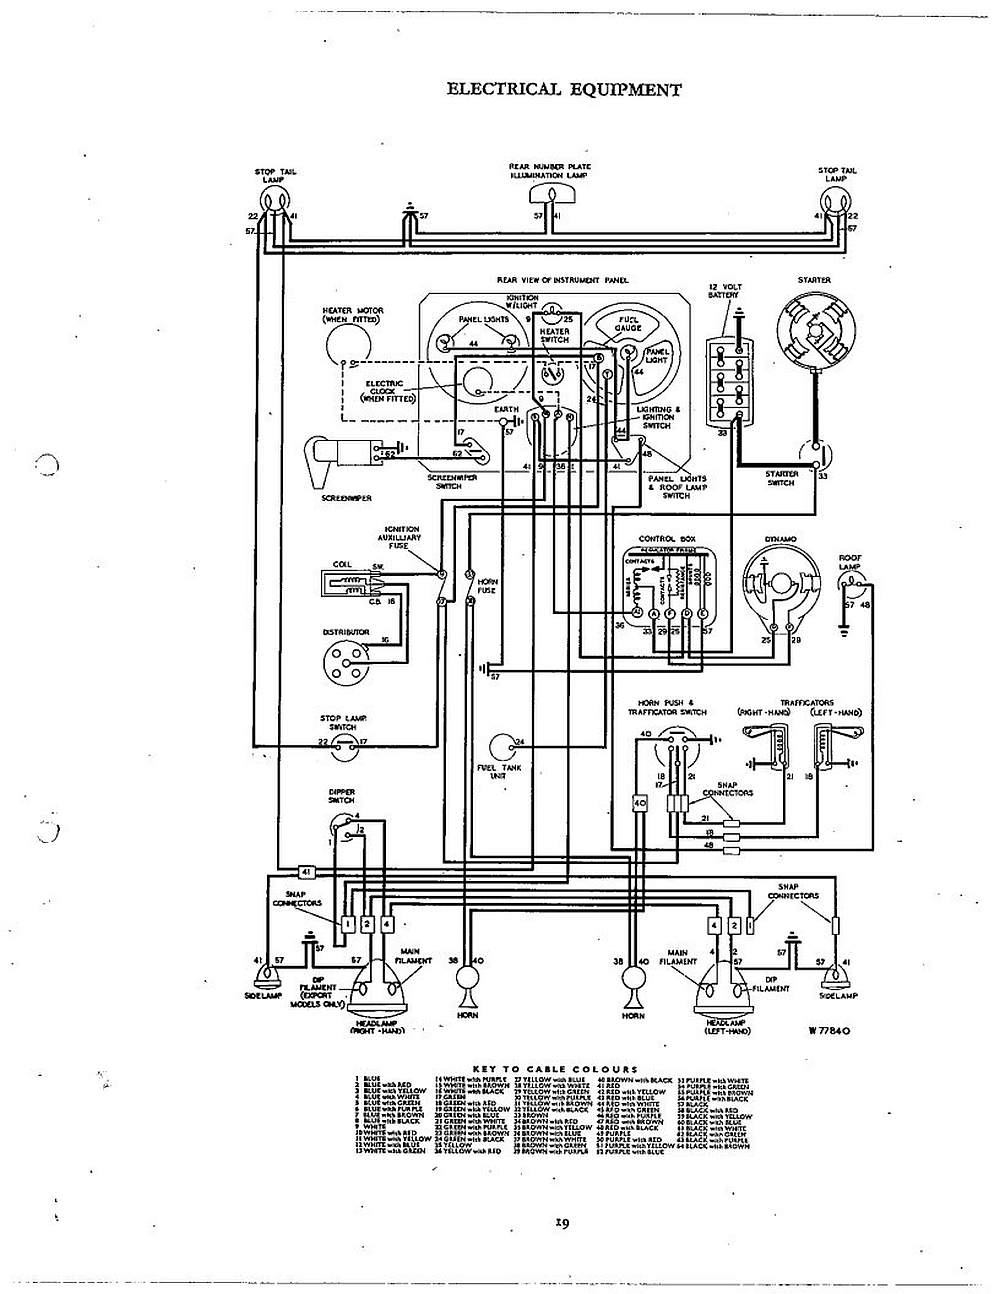 1969 Triumph Tr6 Wiring Diagram Schematic - Schematics Wiring Diagrams •